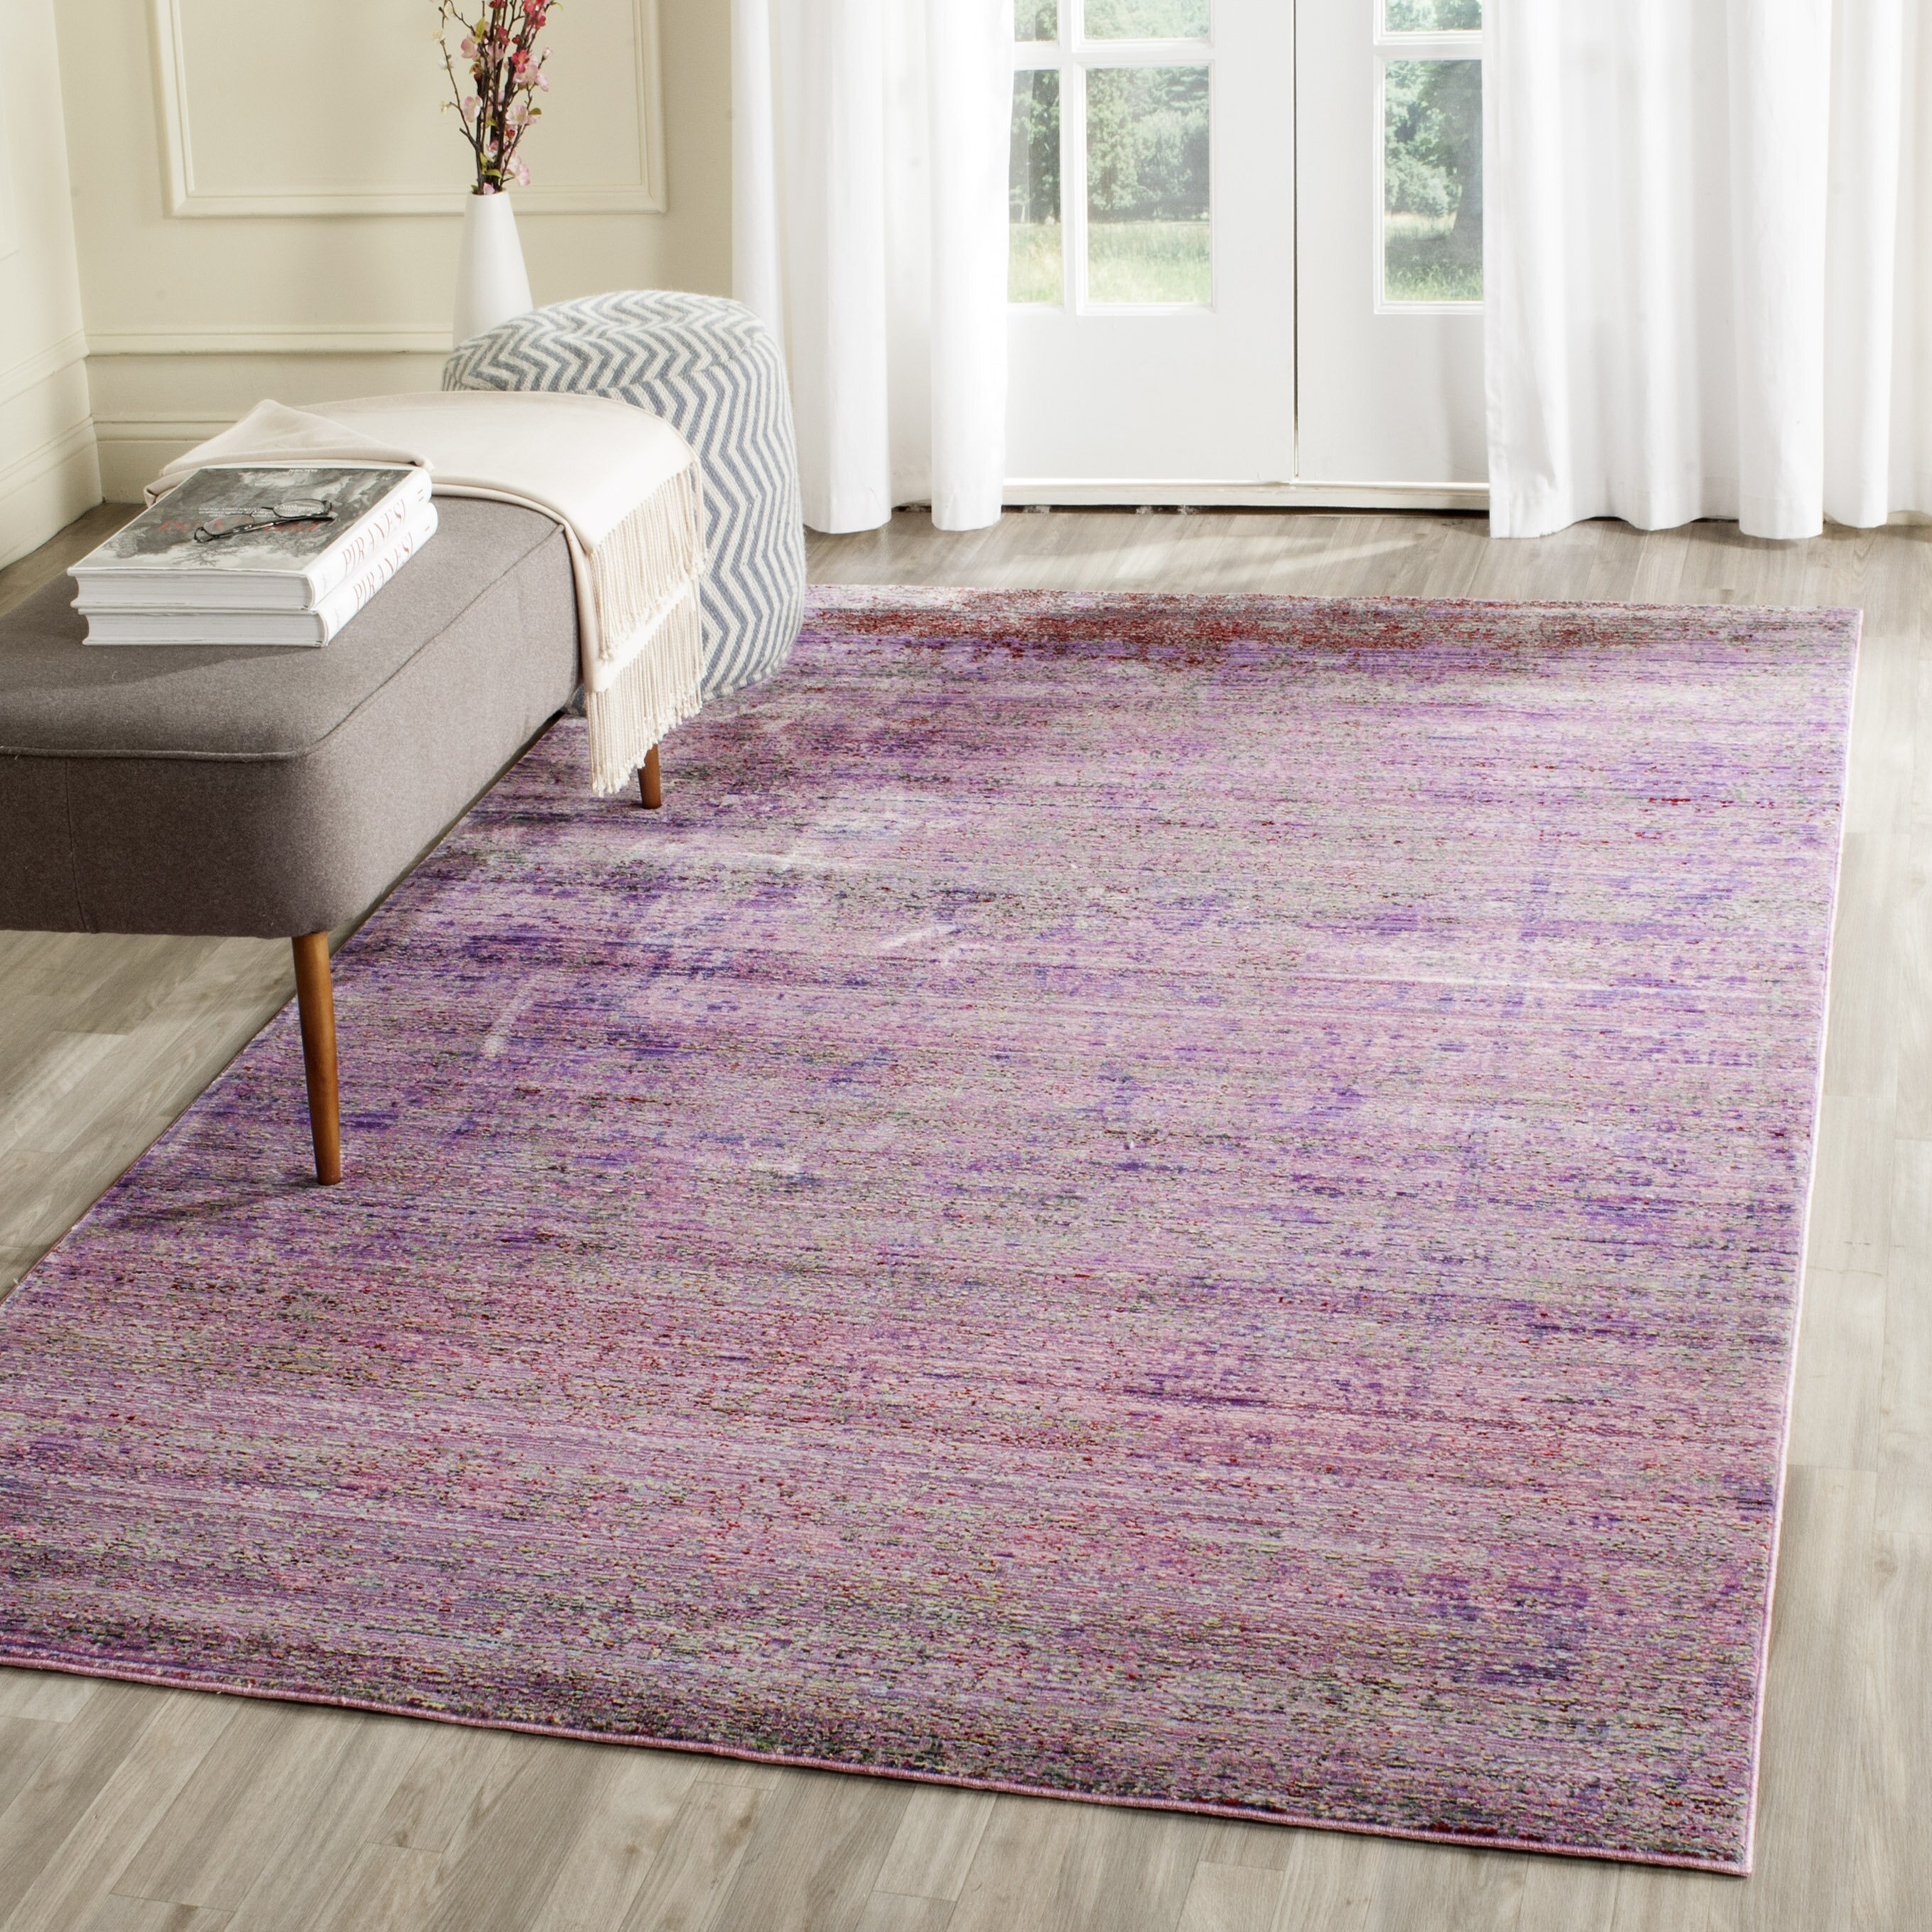 Purple Rug: Safavieh Bedford Purple Area Rug & Reviews